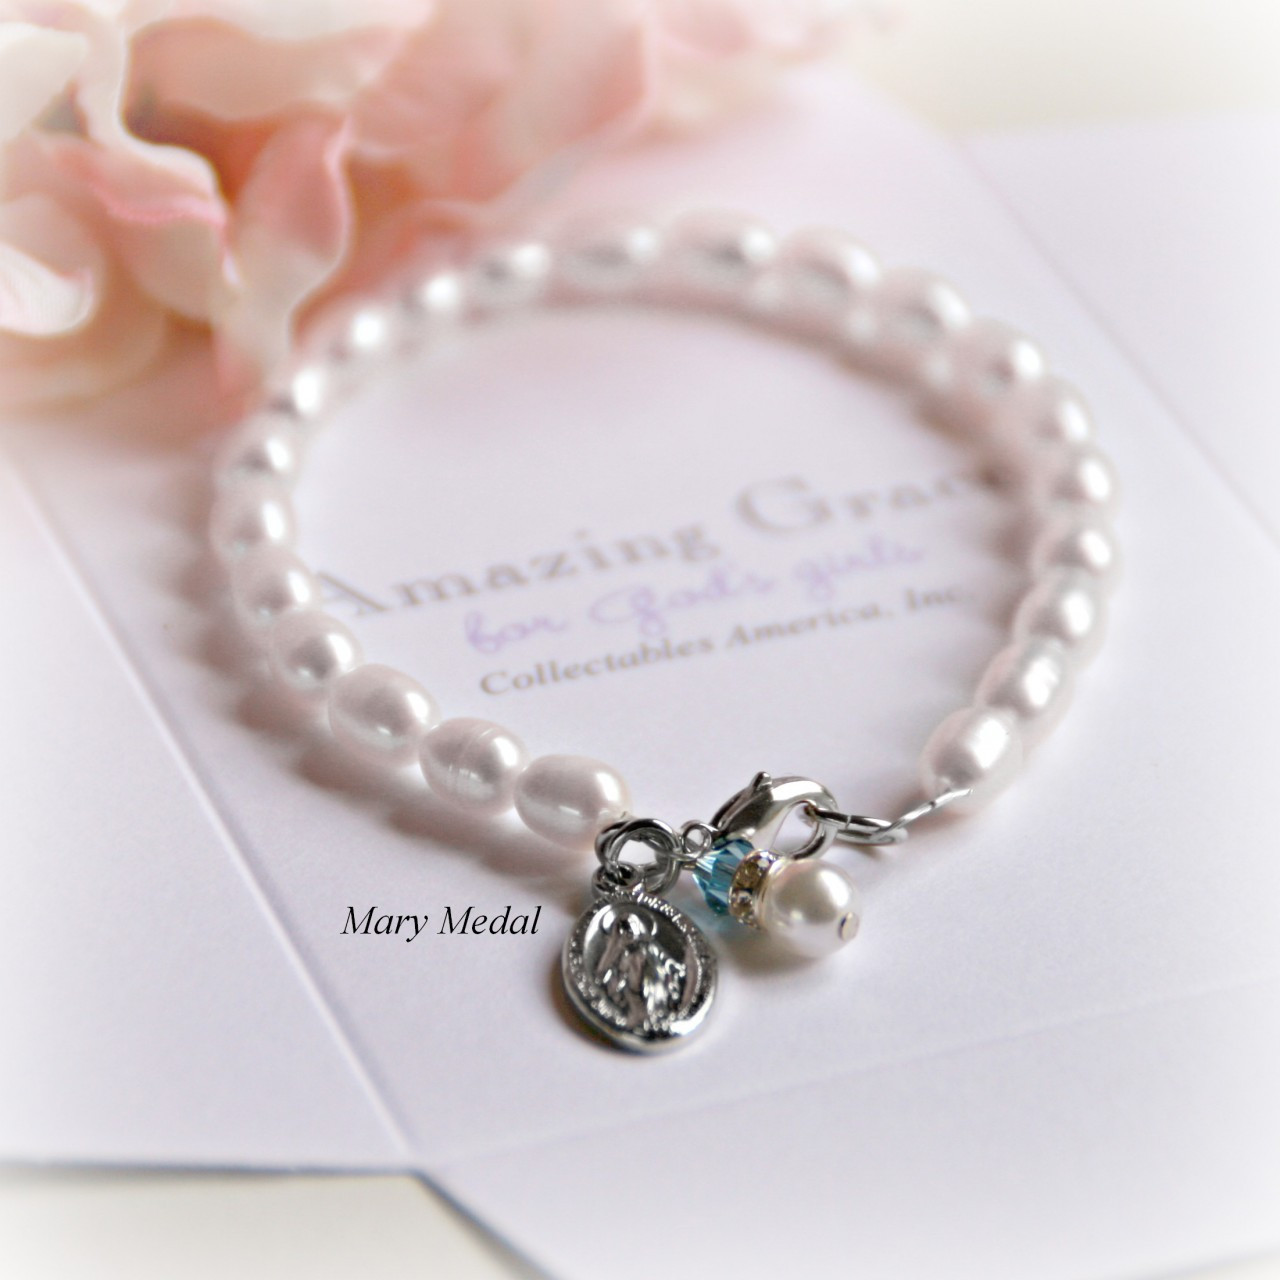 GG-30  Miraculous Medal with Freshwater Pearls Bracelet